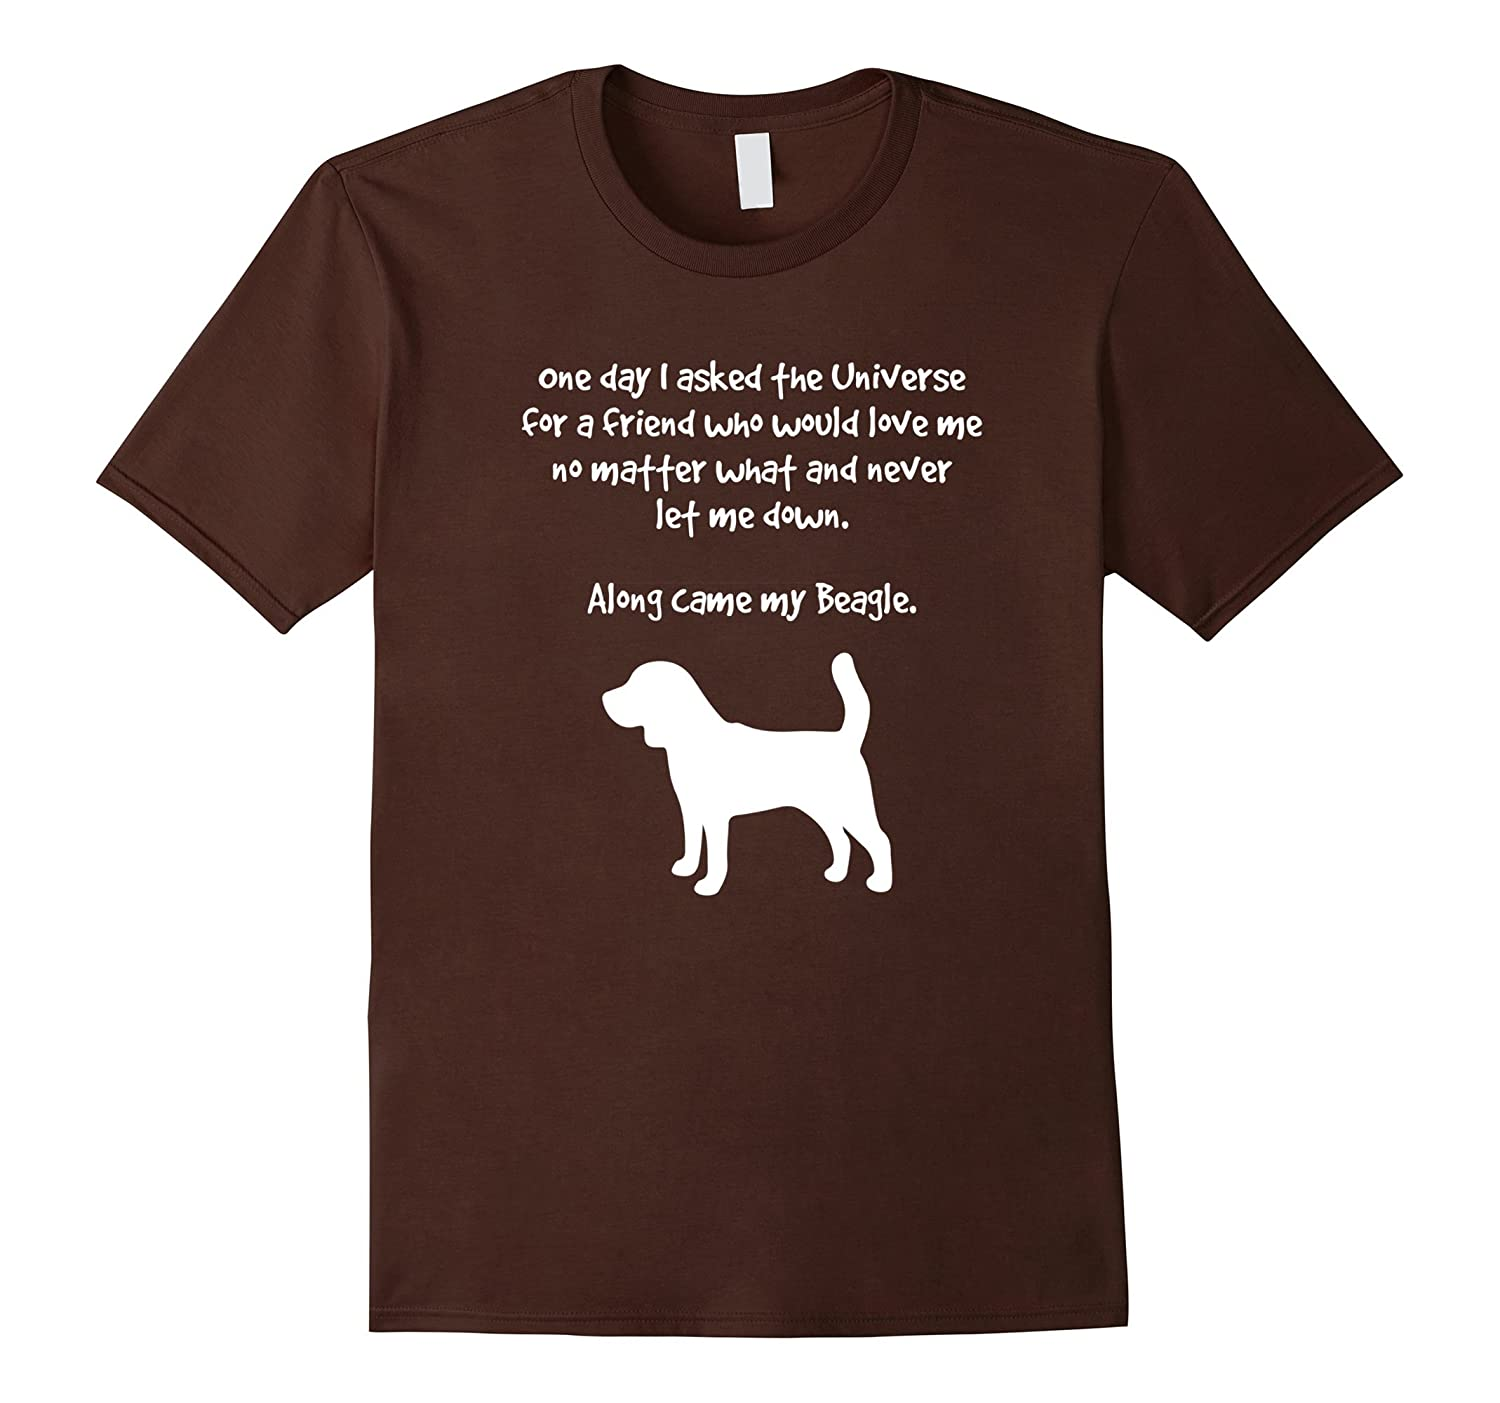 Along Came My Beagle Inspirational T-Shirt For Dog Lovers